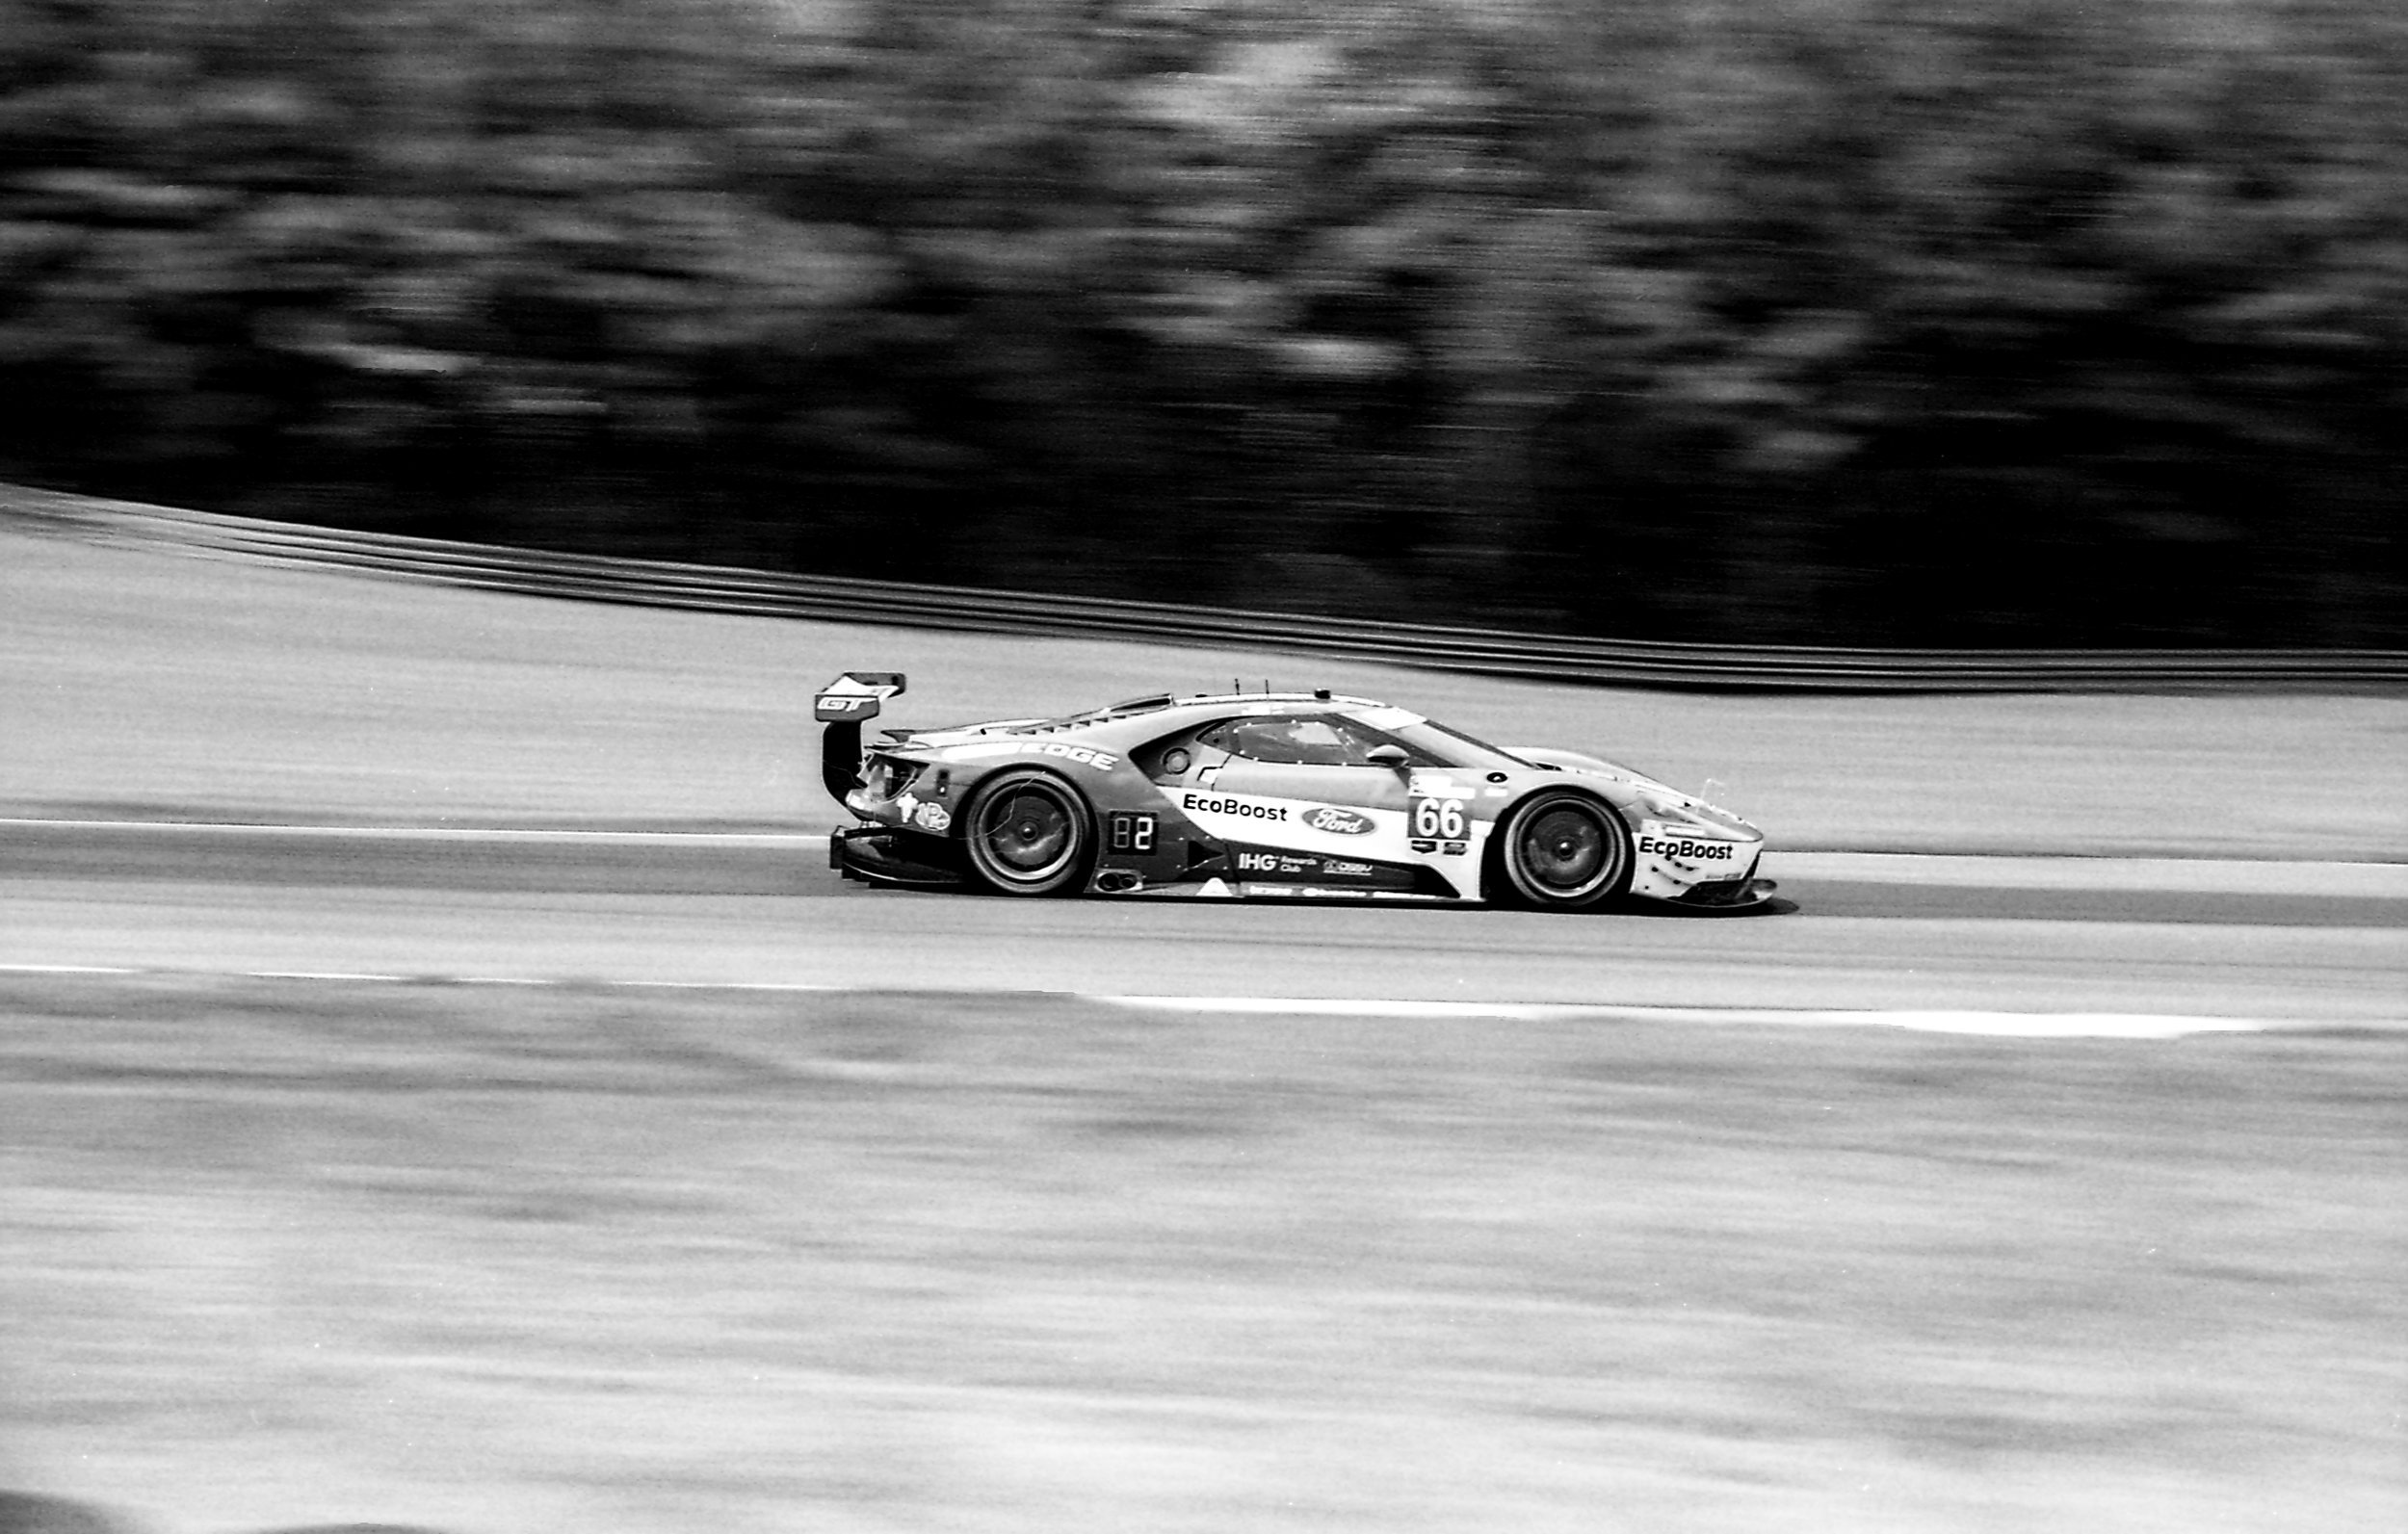 The Ford GT speeding along full throttle...